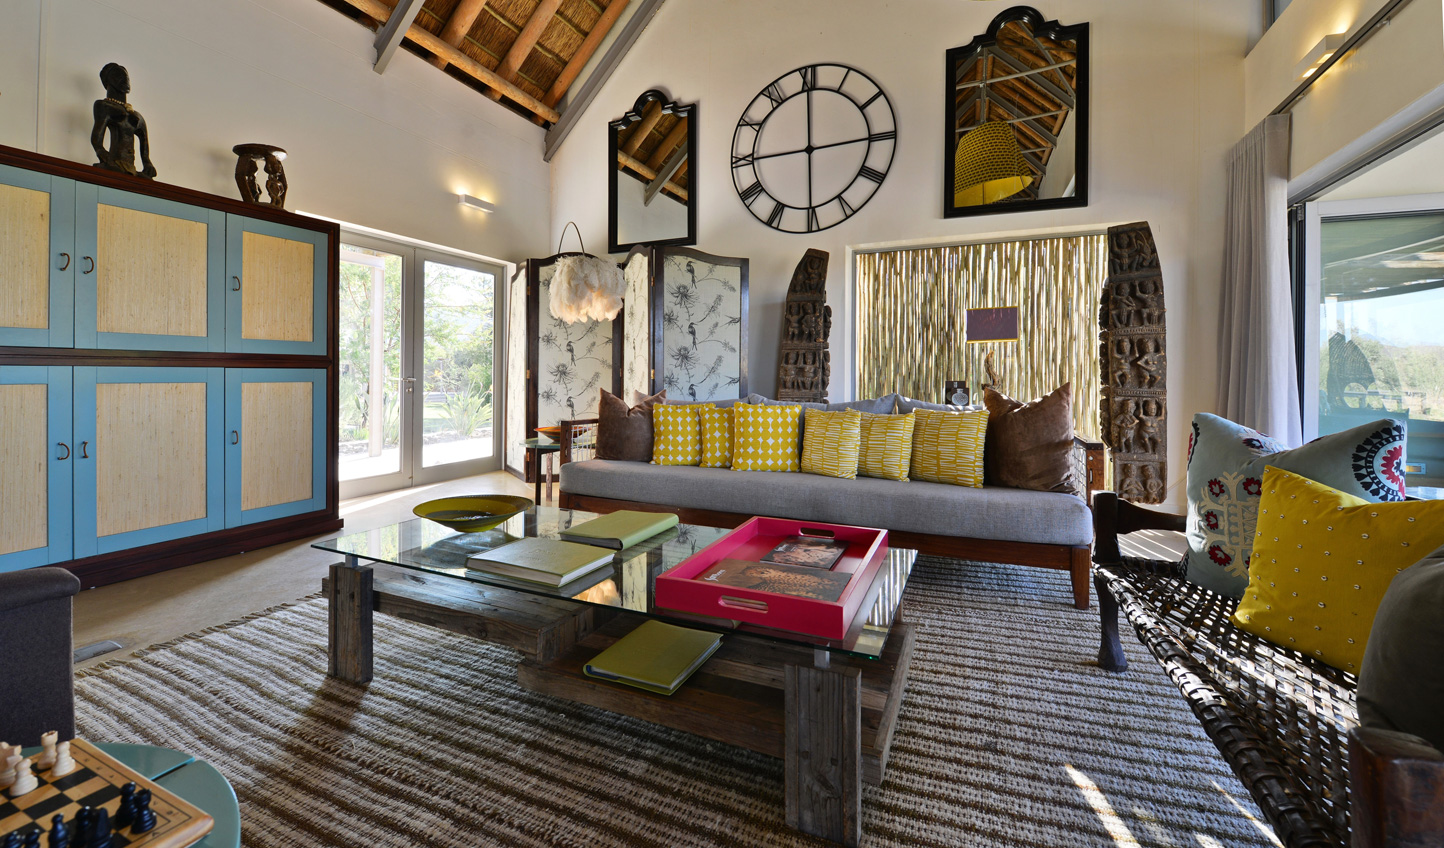 Perhaps Gondwana Lodge is more to your taste